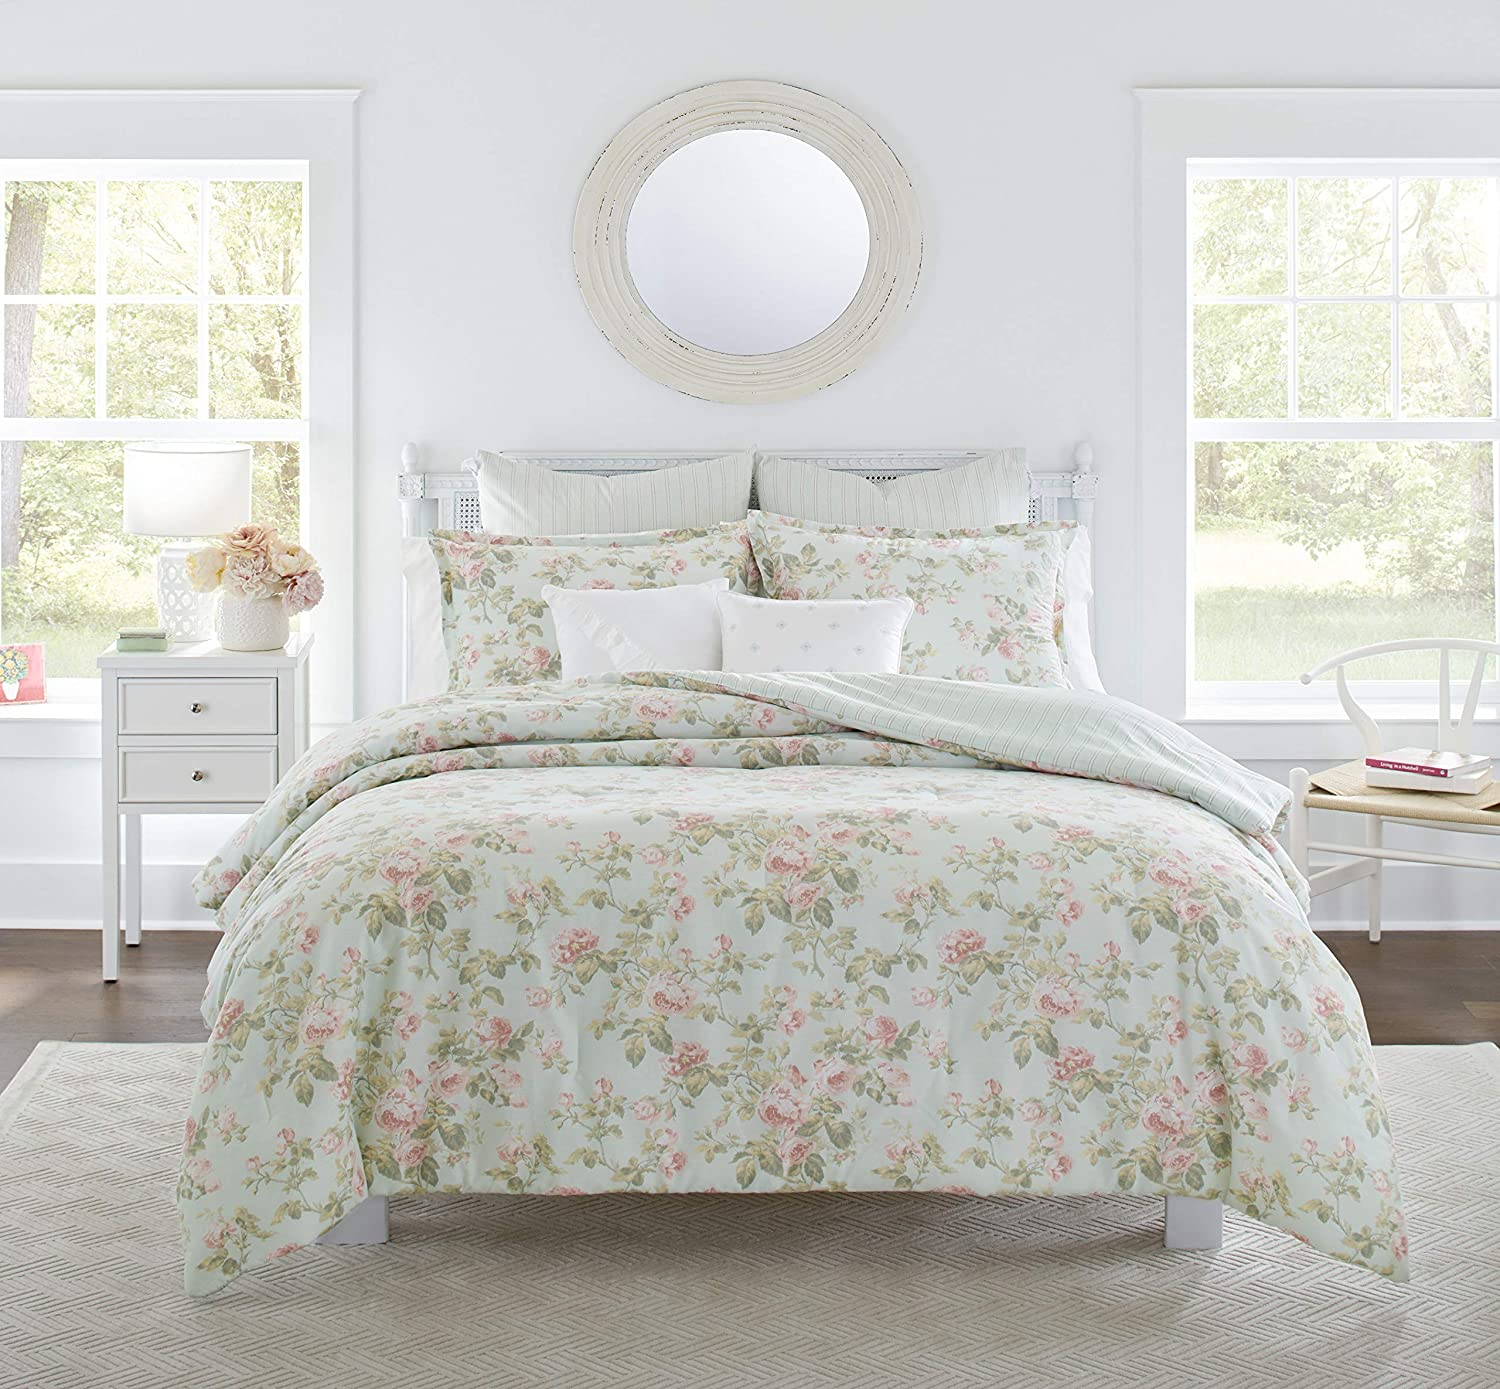 Laura Ashley Home Madelynn Cotton 5 Piece Comforter Bonus Set Twin Amazon Ca Home Kitchen